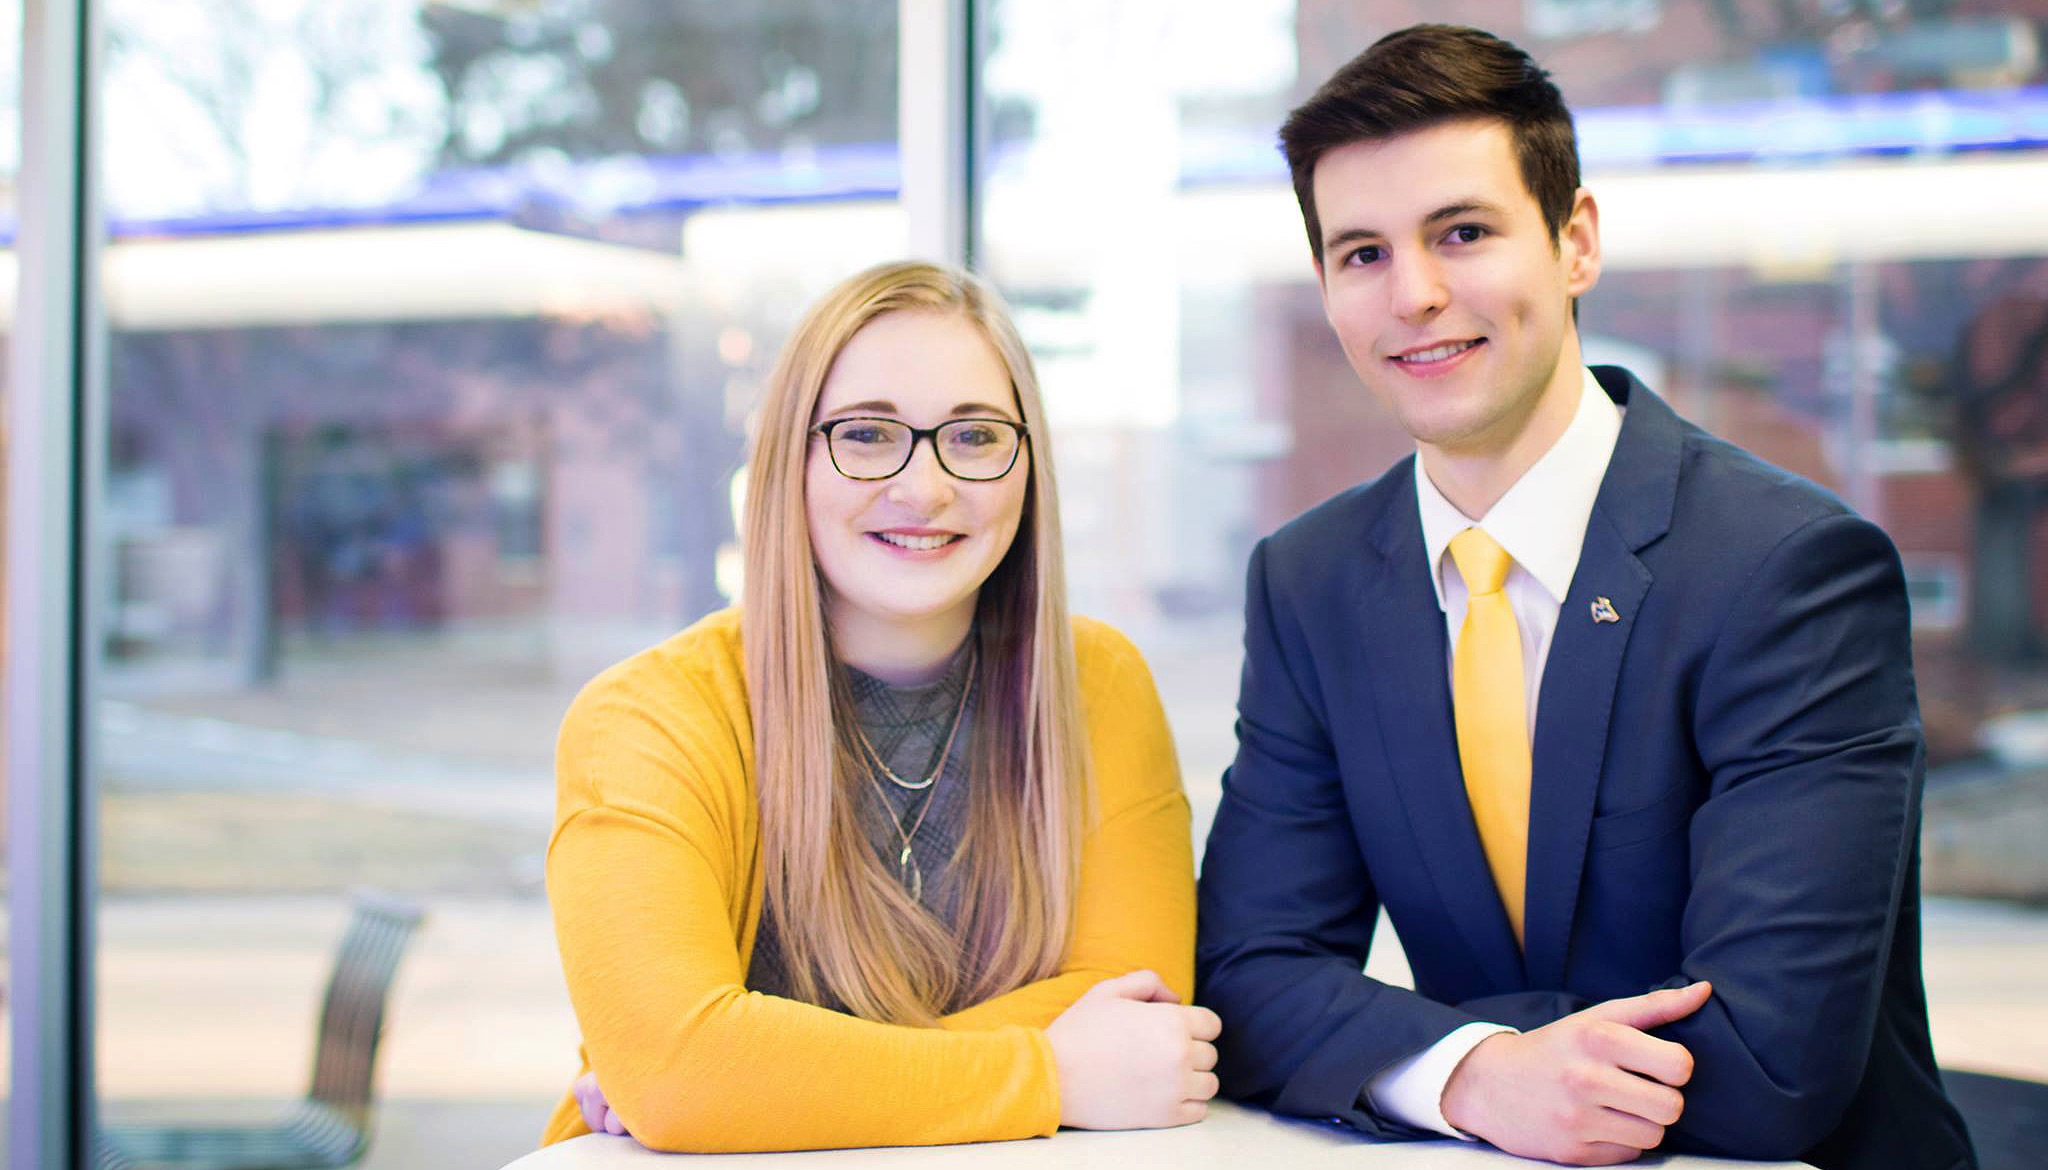 Austin Partridge of Grand Island, right, and Ivy Prater of Ewing were elected Thursday as the new student body president and vice president, respectively, at the University of Nebraska at Kearney.